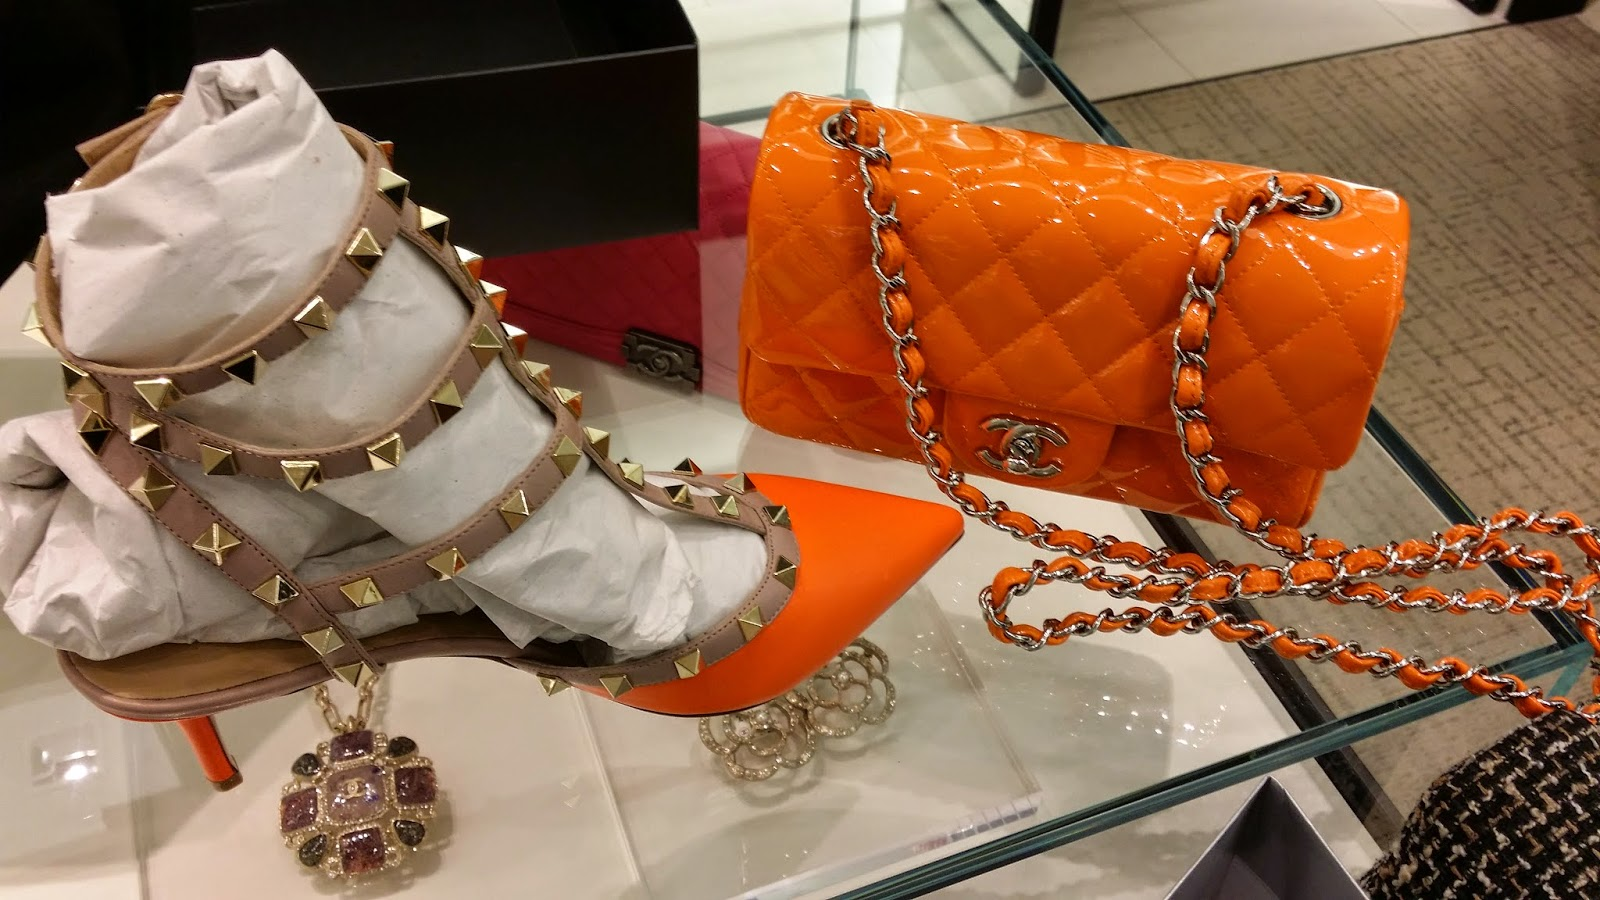 Mini Vs Woc Princess Cypress Tpf Chanel Orange Patent Leather Mini Vs